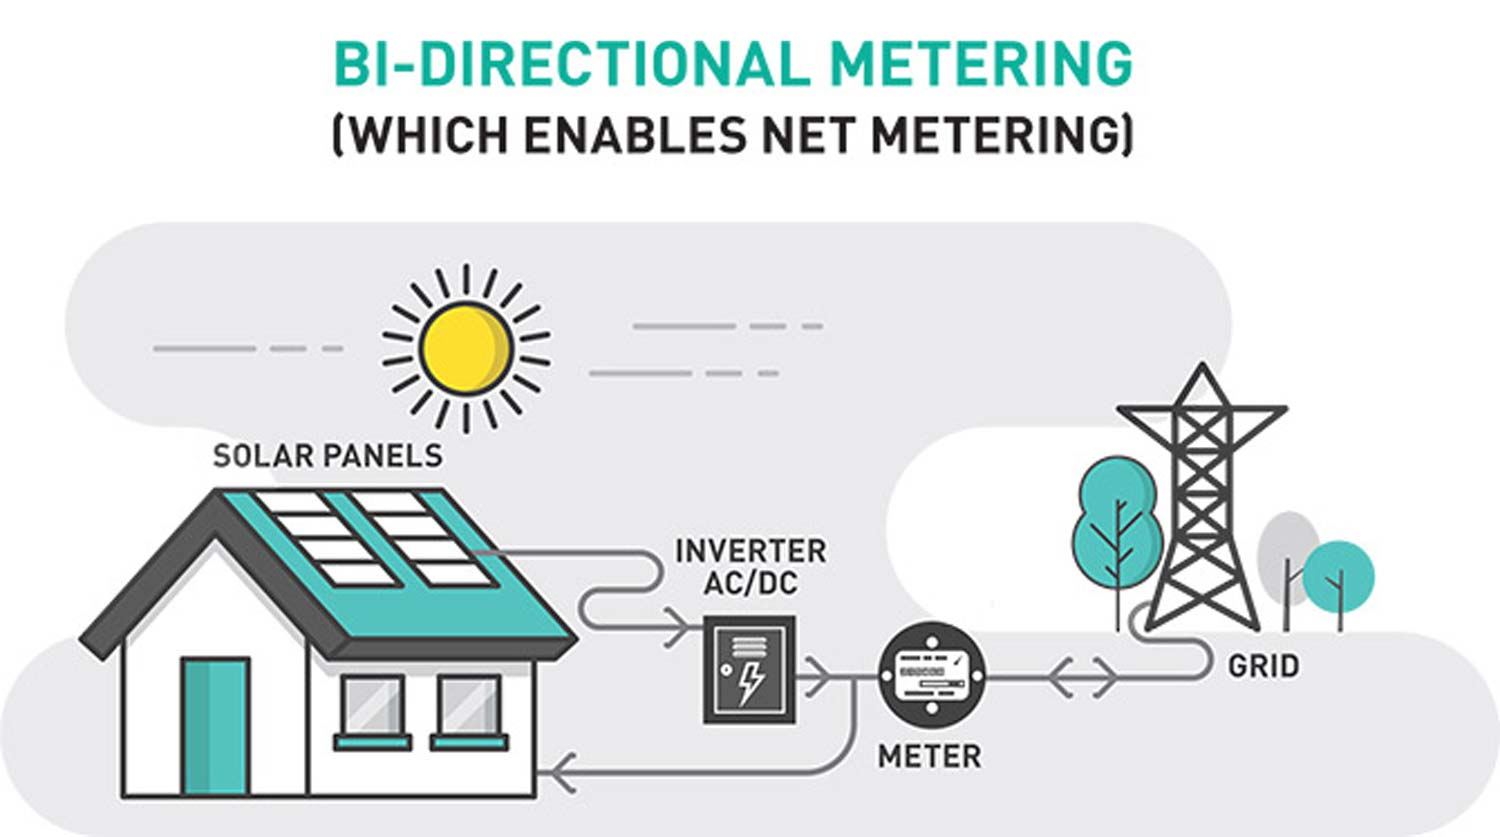 diagram of net metering